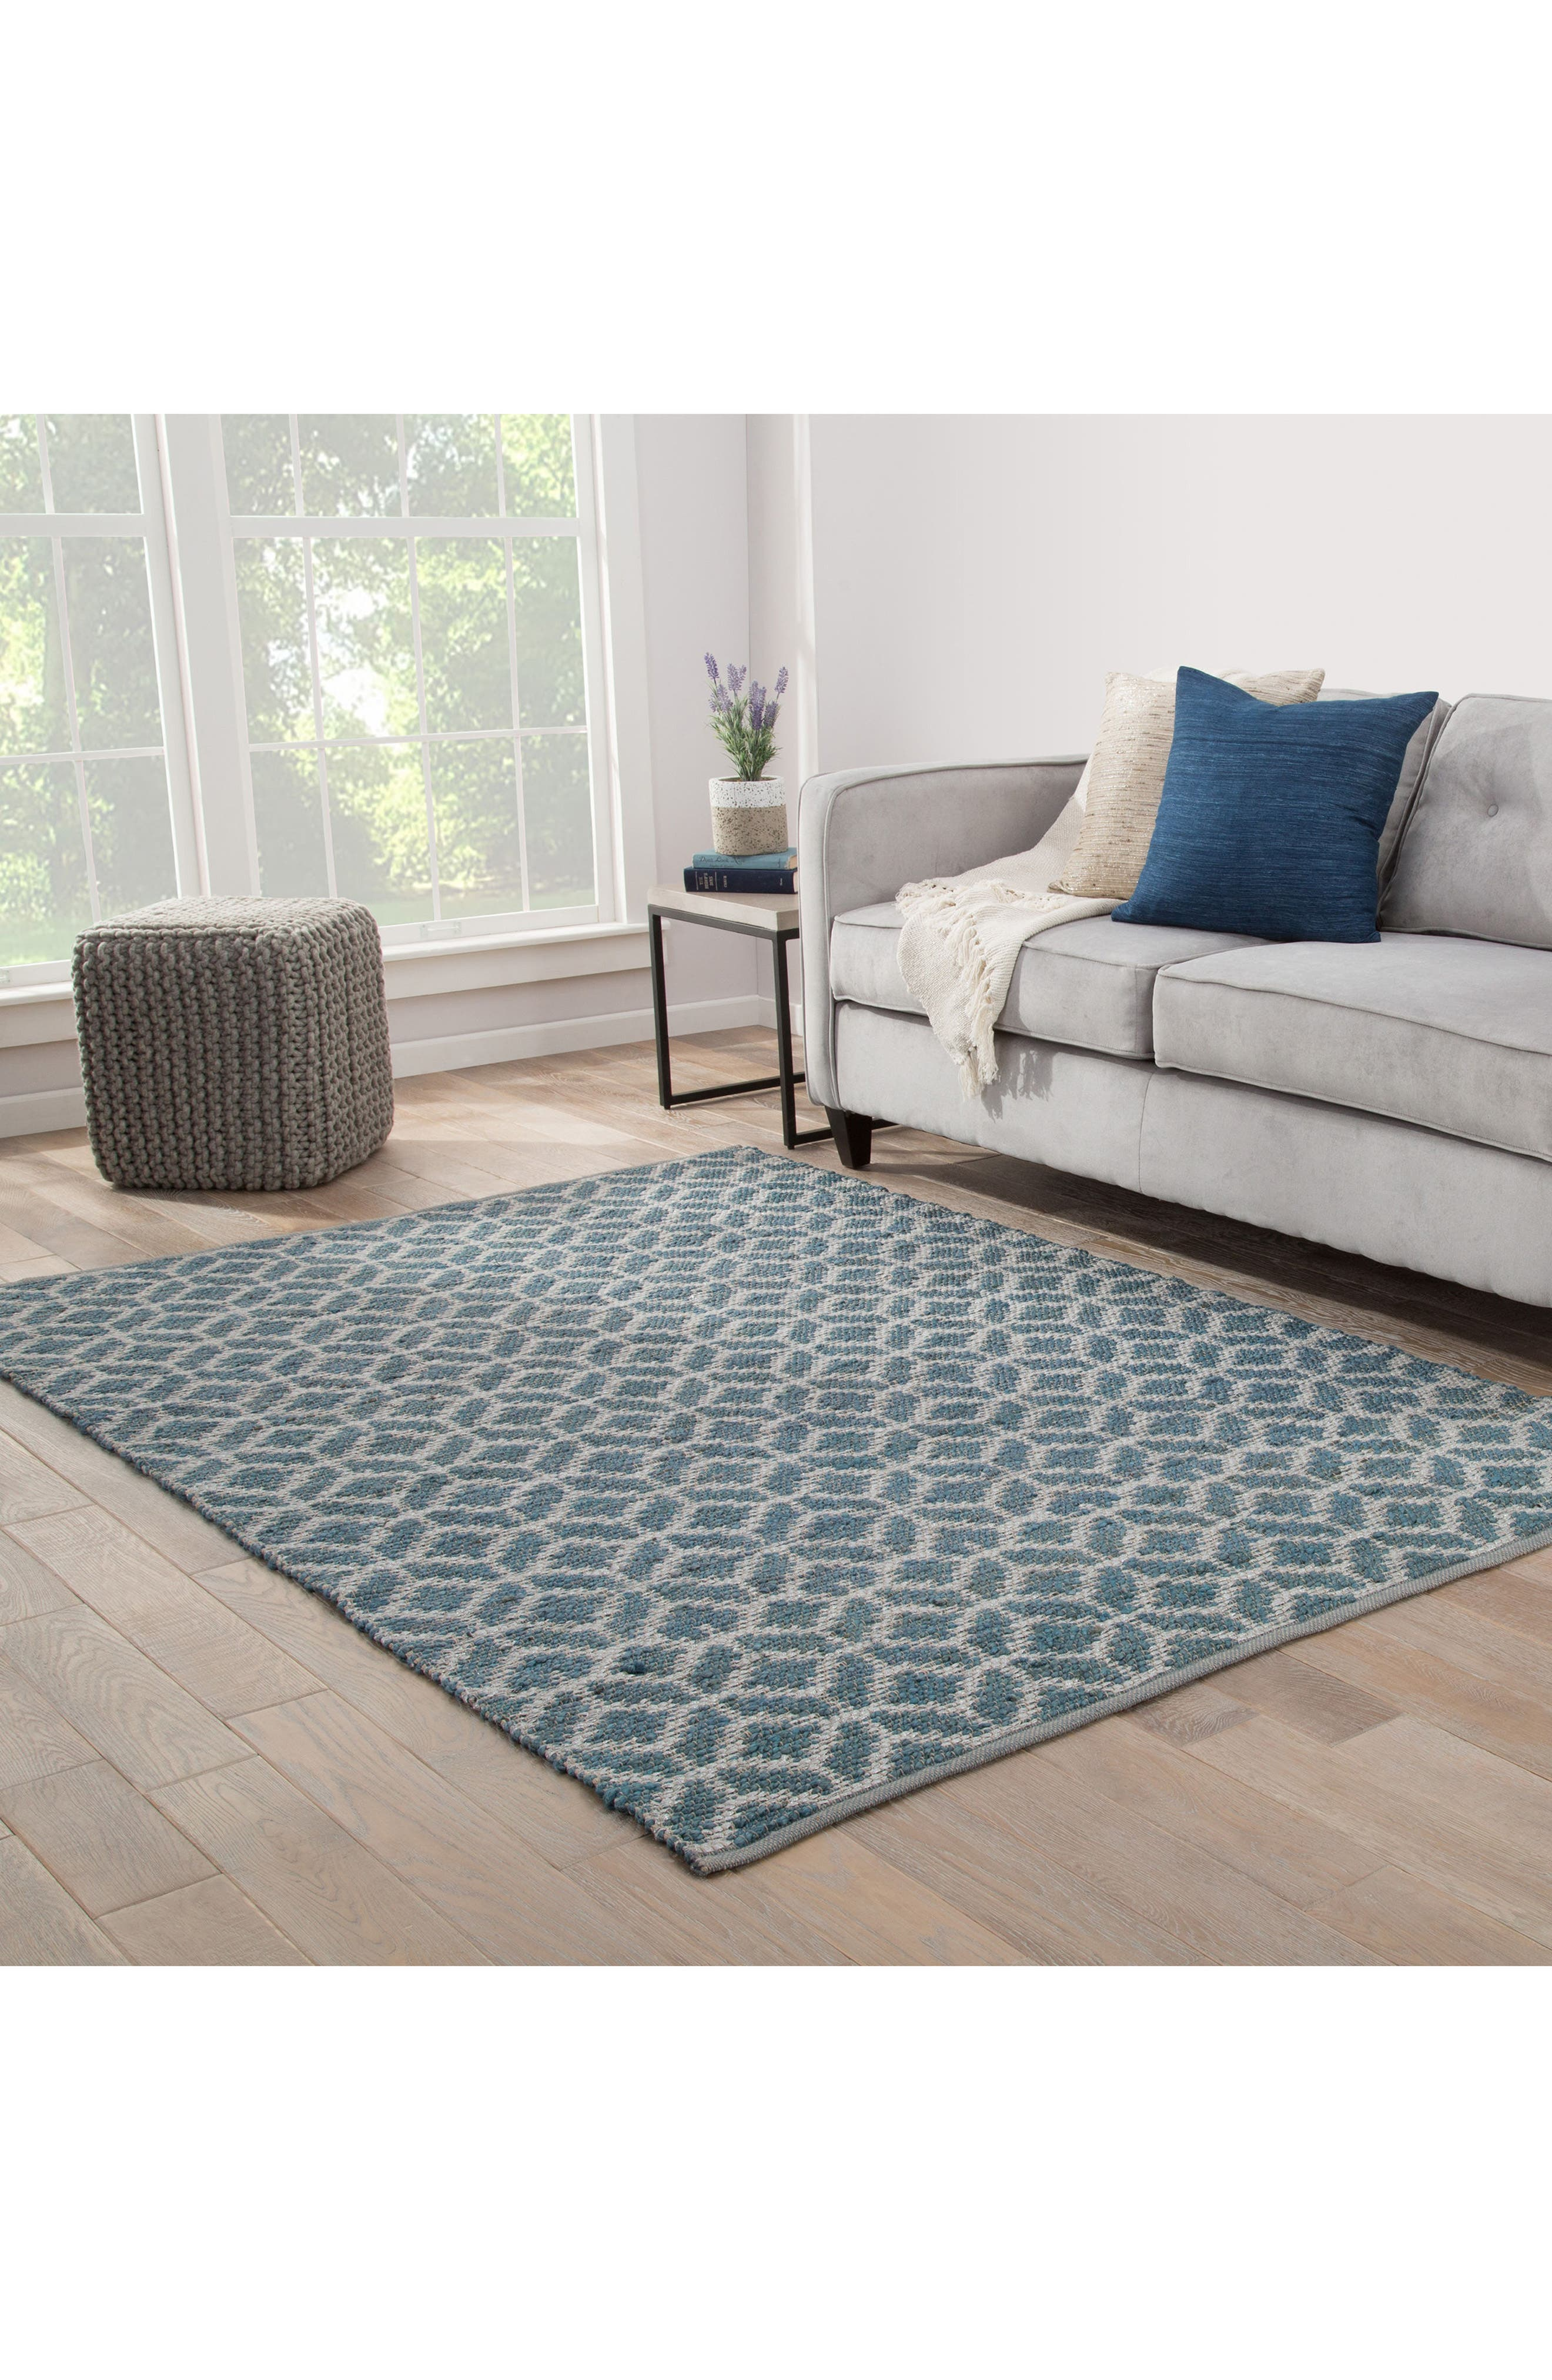 Calm Waters Rug,                             Alternate thumbnail 8, color,                             INDIAN TEAL/ SILVER